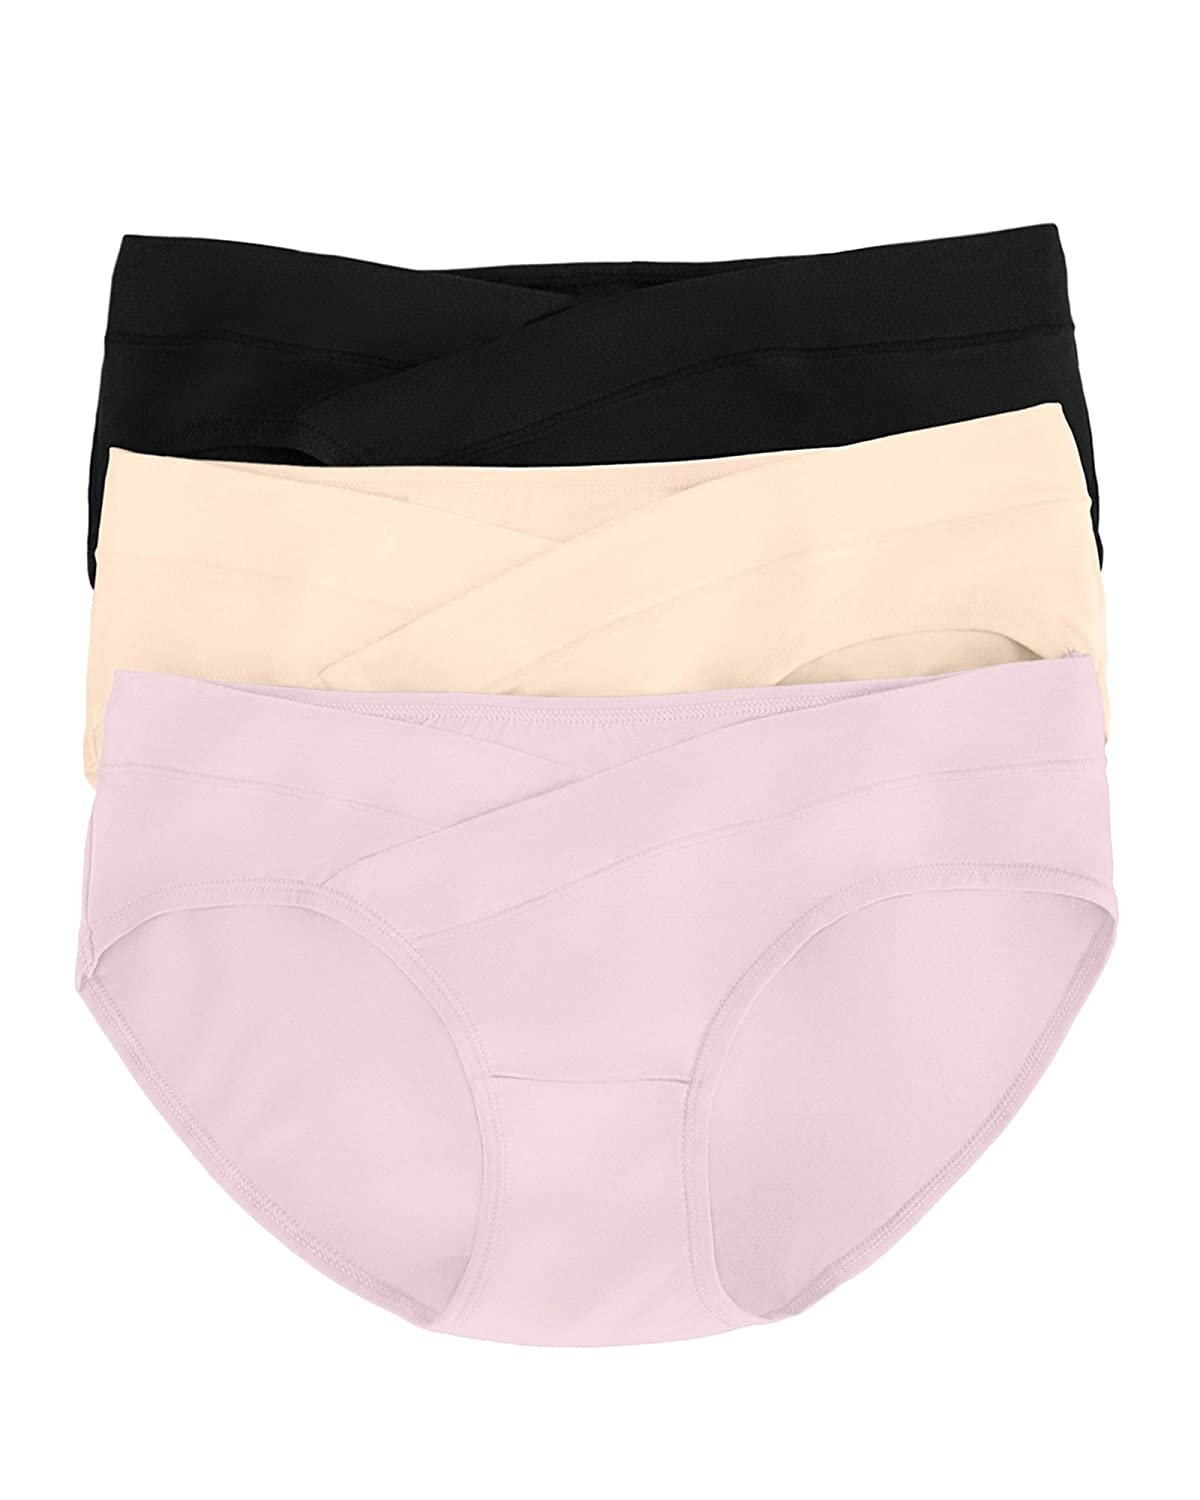 ddc53b31fa Ultra-soft, non-itchy, stretchy fabric perfect for motherhood - no muffin  top, bags, or sags.